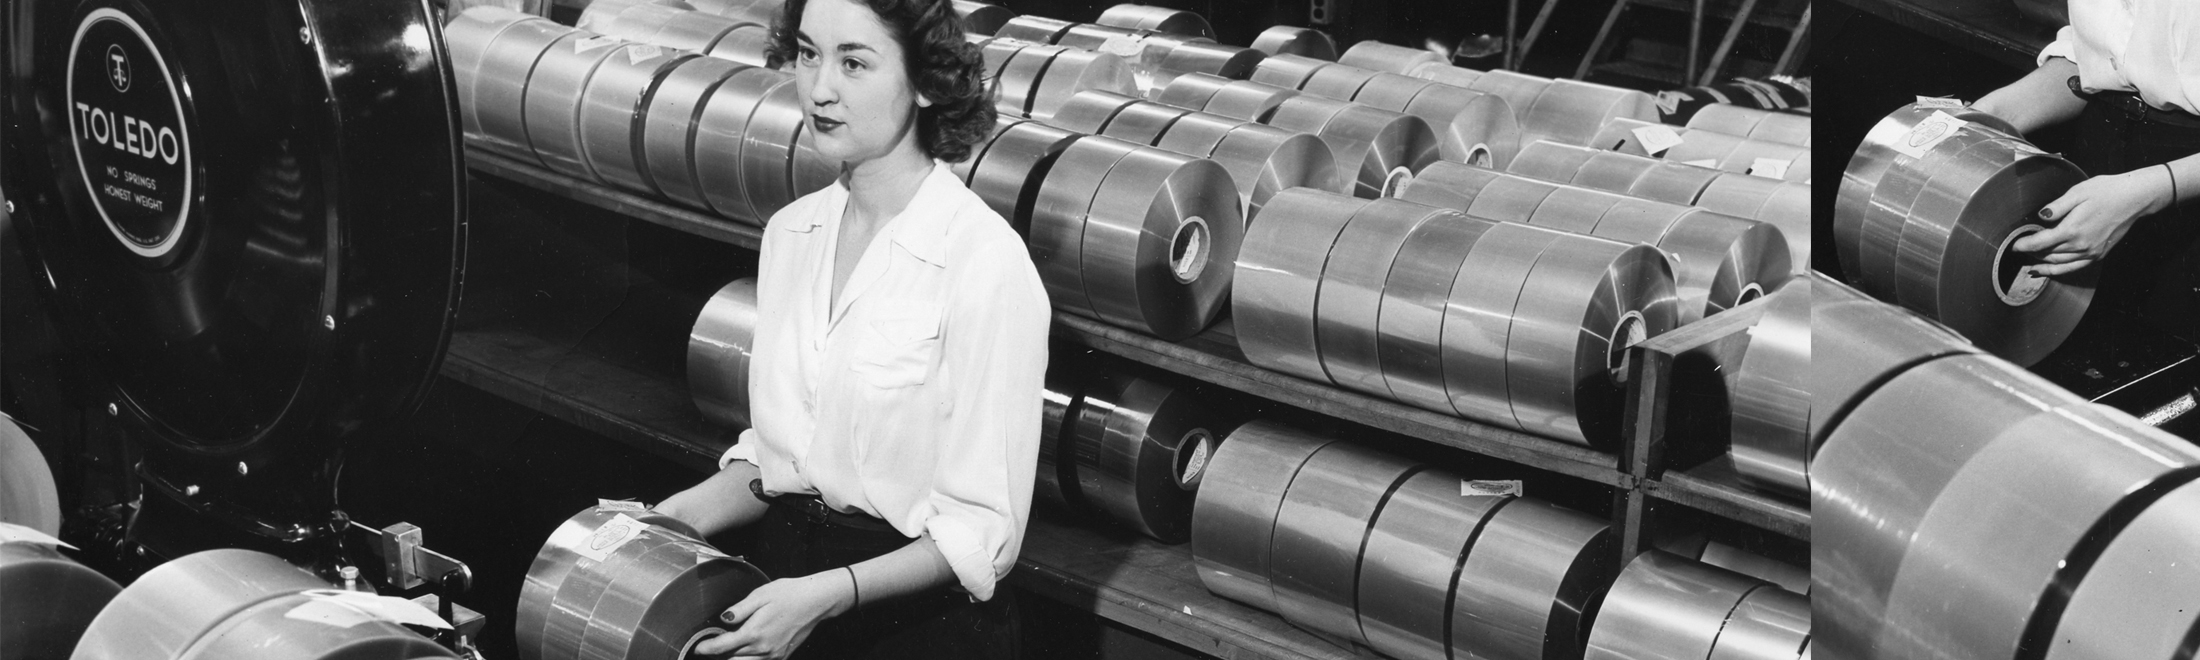 A female worker prepares cellophane rolls for shipment in a factory, 1950.